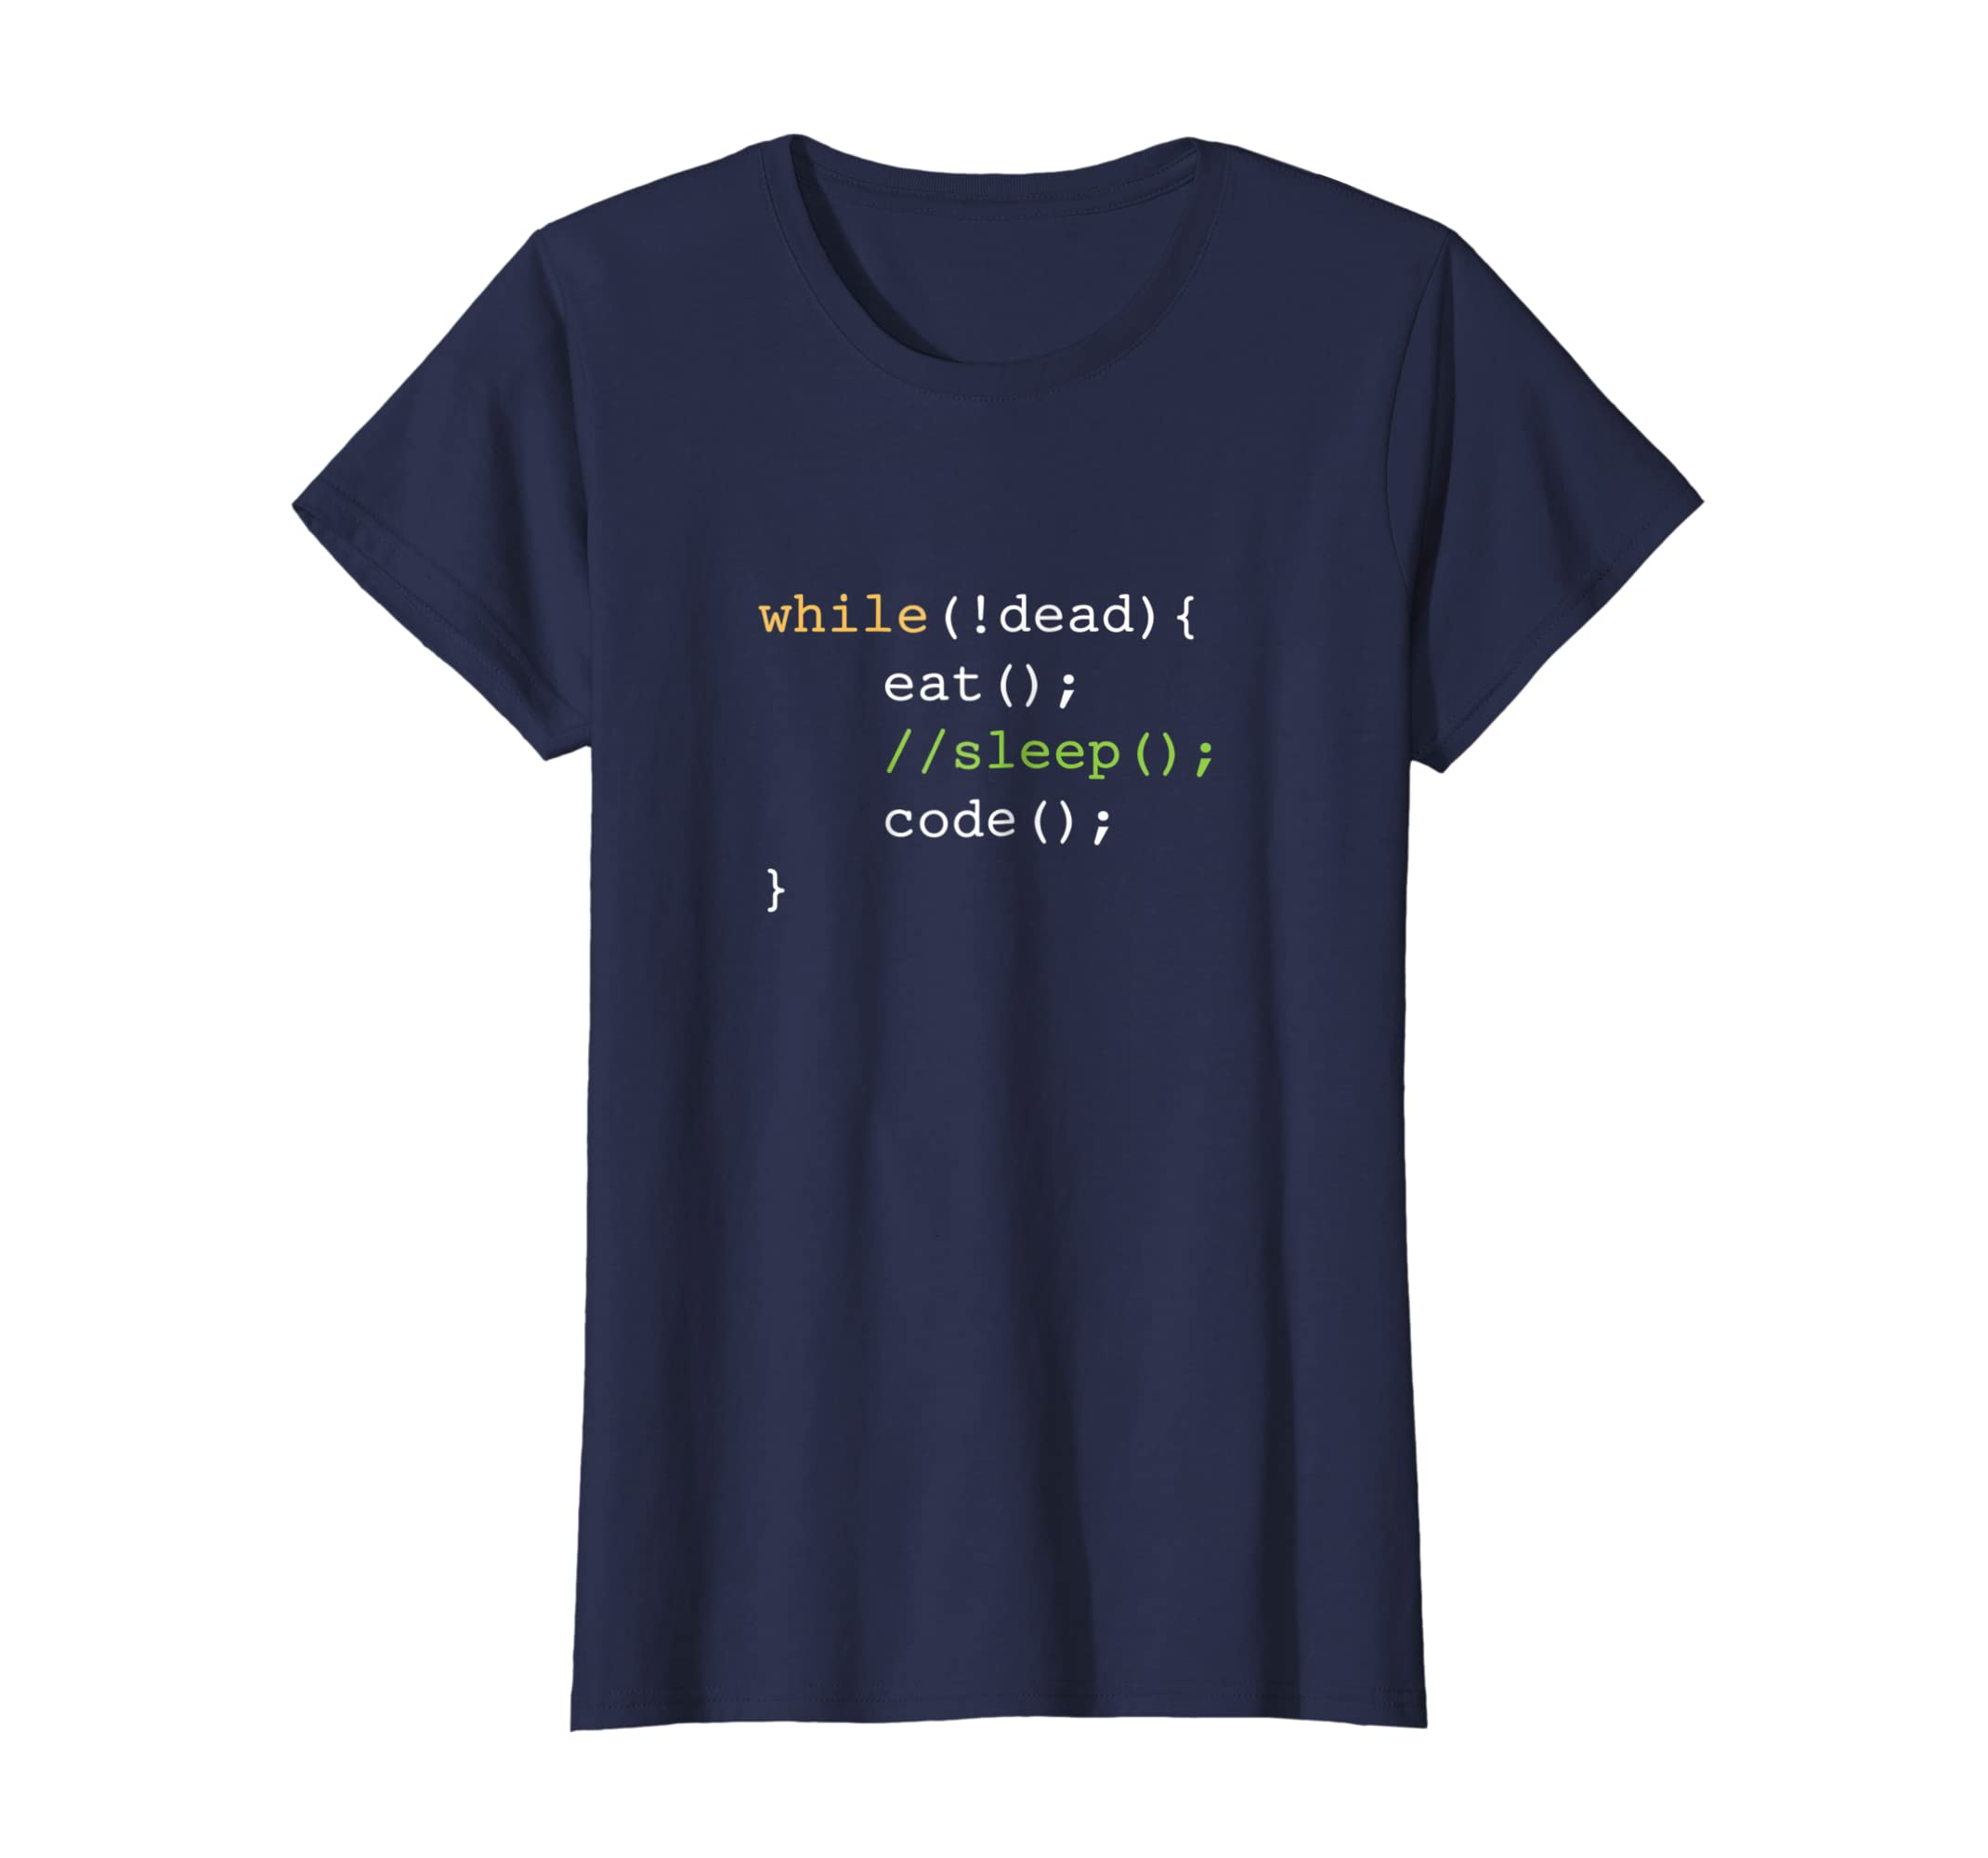 fd1c686f2 Amazon.com: Funny Computer Science Programmer Eat Sleep Code T-Shirt:  Clothing